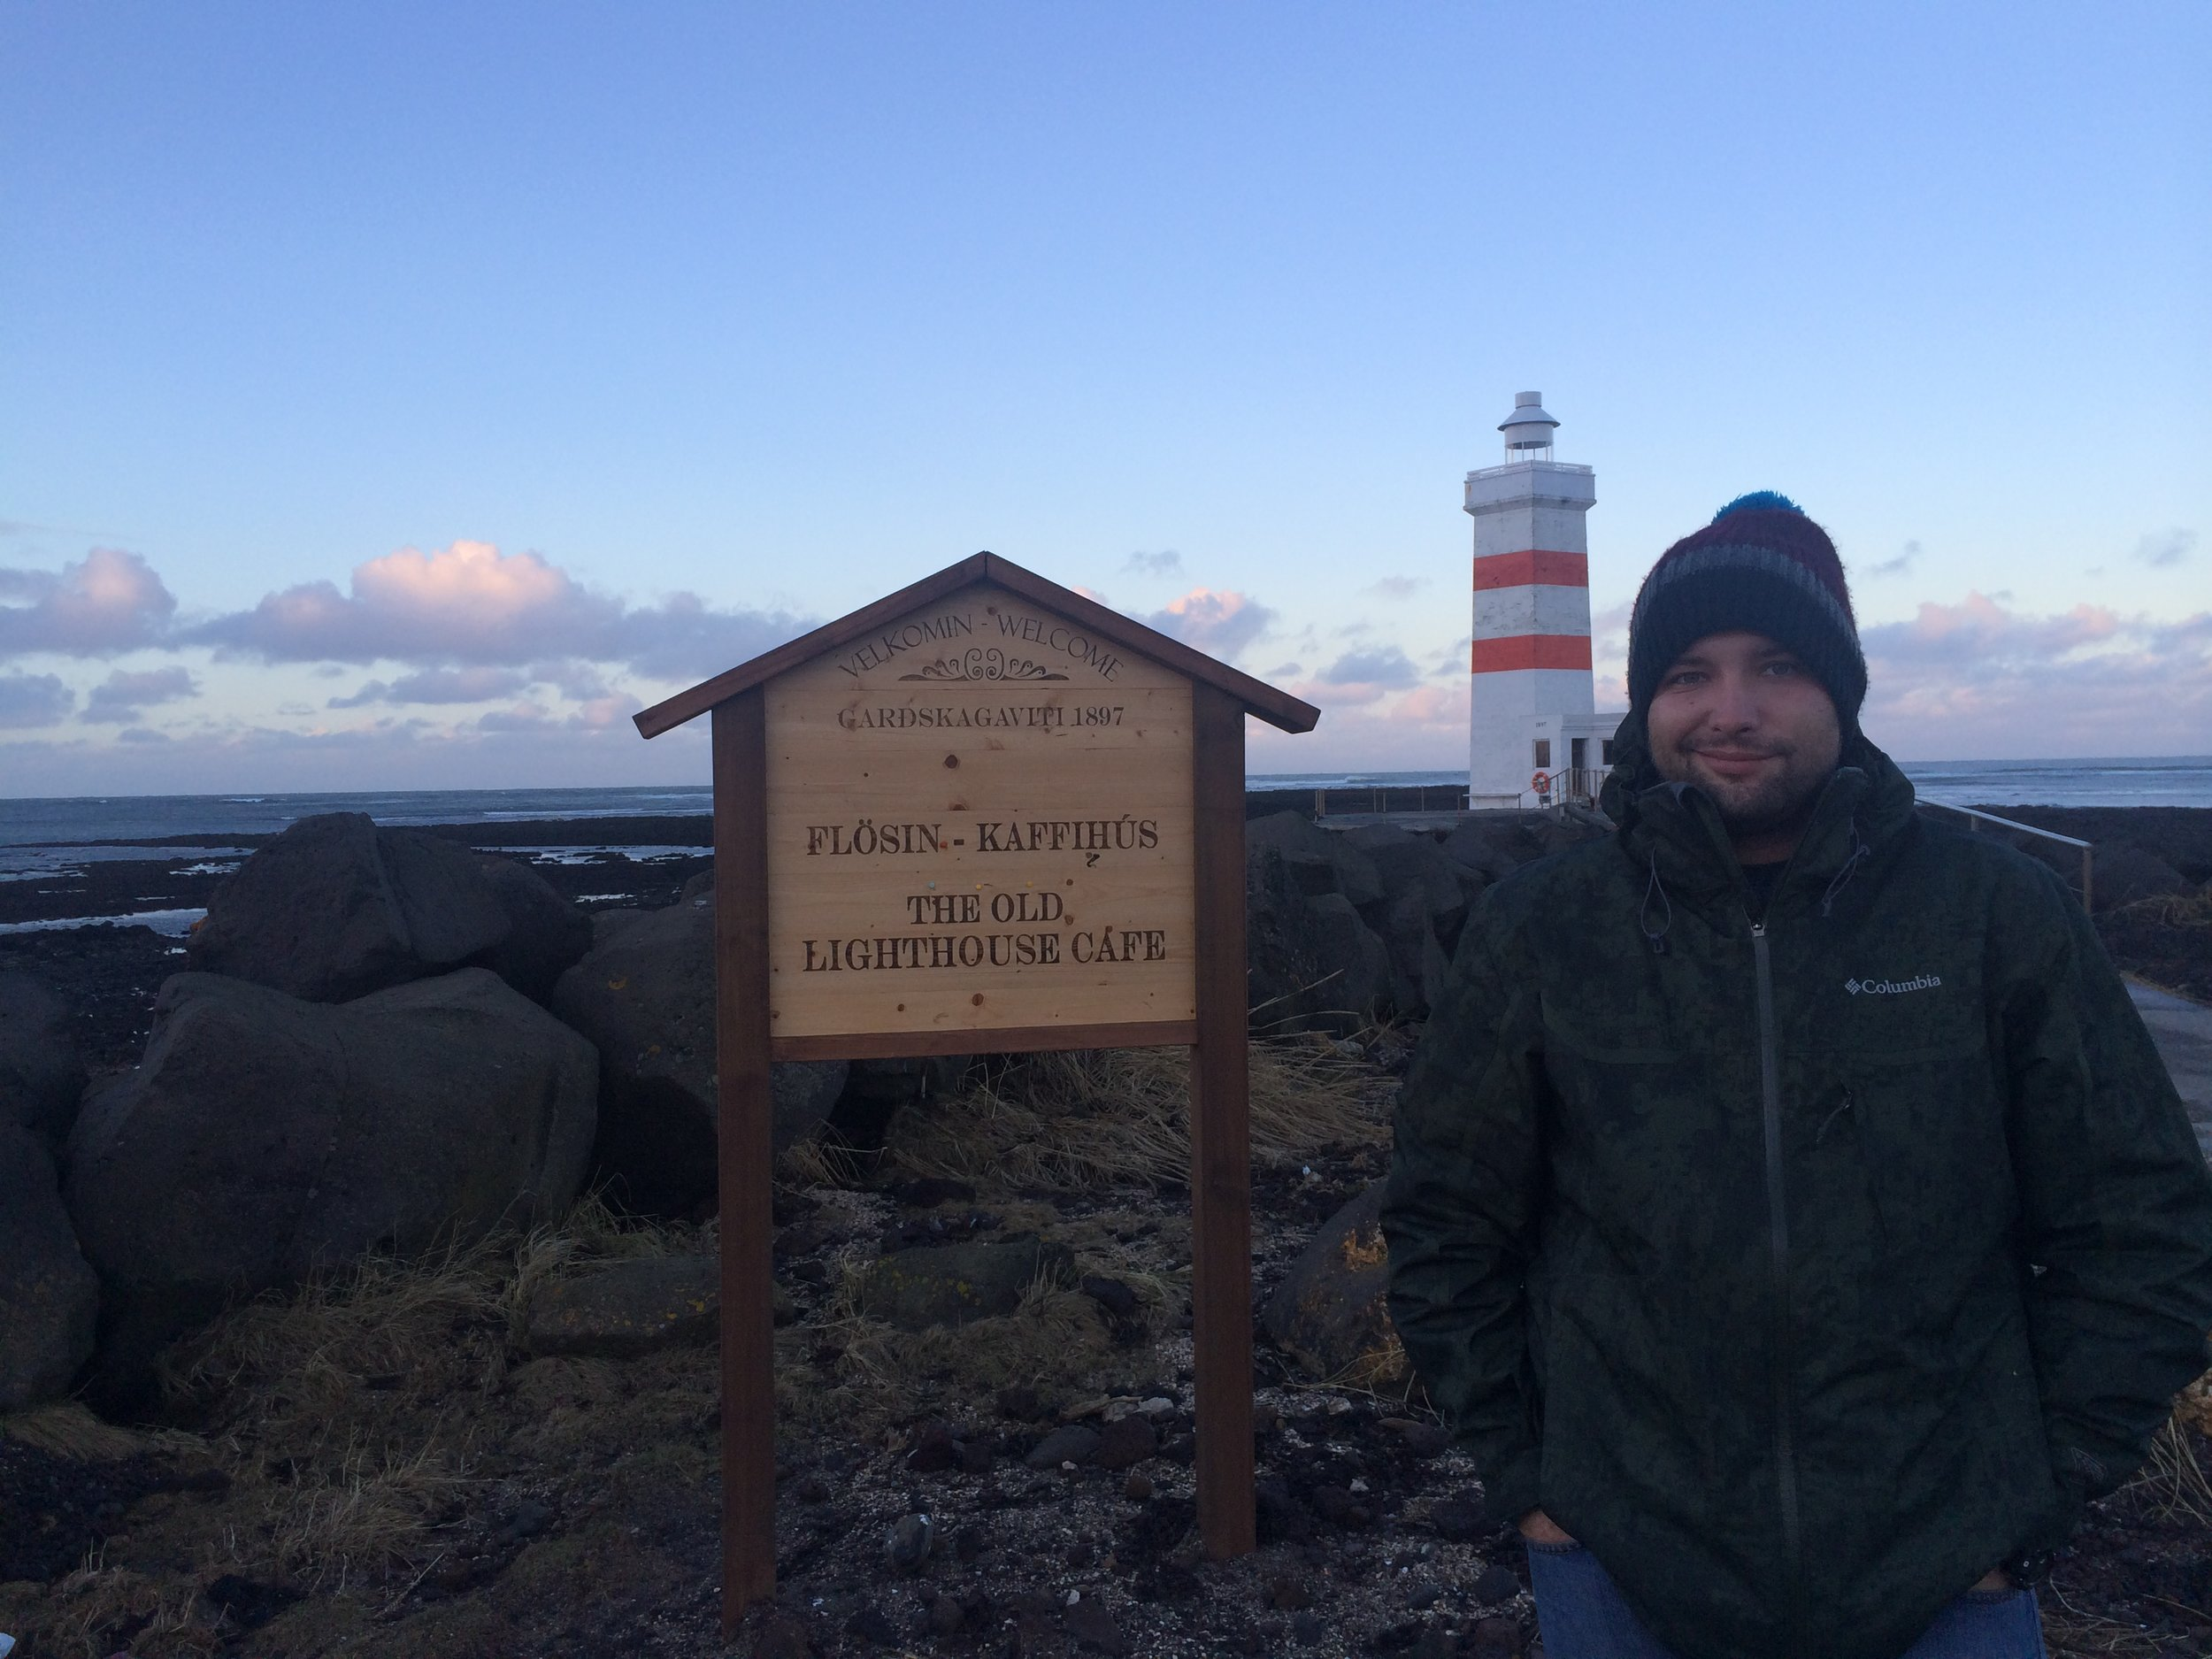 Things No One Tells You About Iceland - Things to do in Iceland, for your Iceland Travel Vacation. Reykjavik, Blue Lagoon Iceland, and so much more.  Here are Things they don't tell you about Iceland. What you should know before you go. Iceland in the winter is such a great trip! #iceland #travel